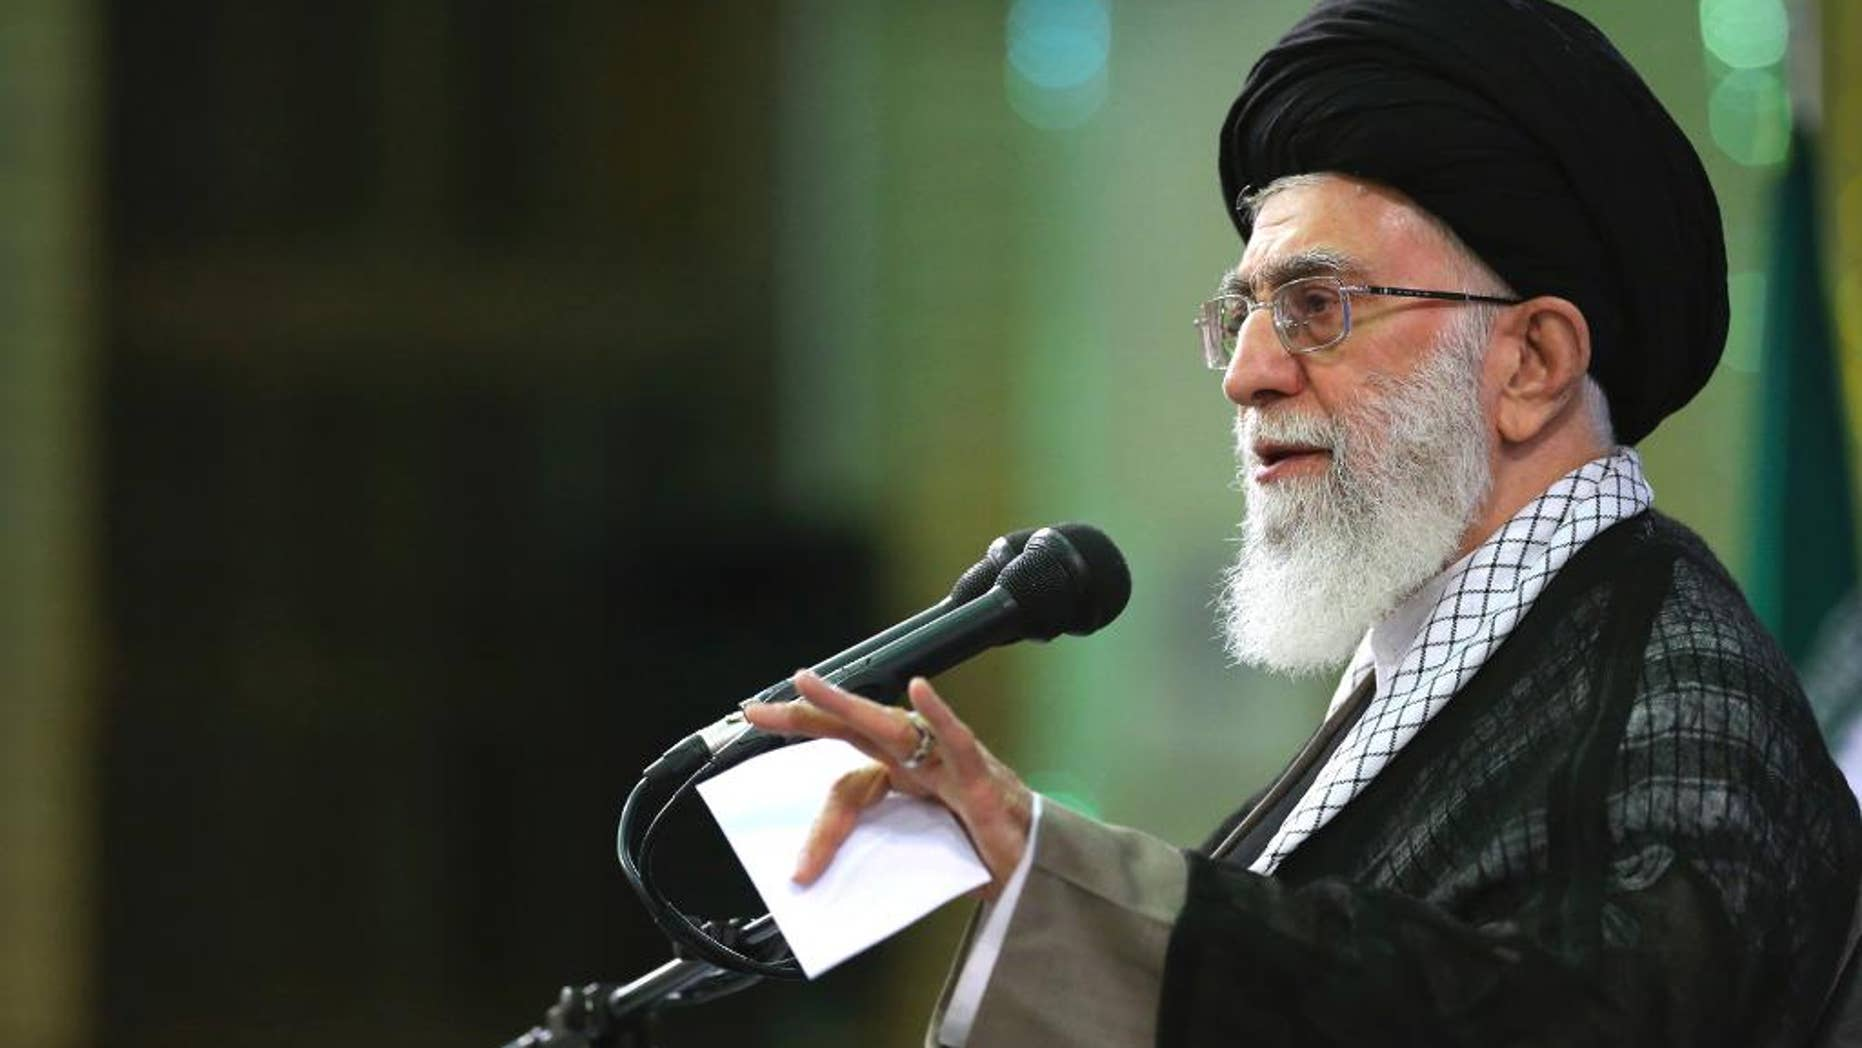 In this picture released by an official website of the office of the Iranian supreme leader on Saturday, May 16, 2015, Supreme Leader Ayatollah Ali Khamenei speaks in a meeting in Tehran, Iran.  Iran's supreme leader said Saturday the U.S. only is pursuing its own interests amid worries about safety in the waterways of the Persian Gulf, just after U.S. President Barack Obama hosted Arab leaders at Camp David to assuage their security concerns. (Office of the Iranian Supreme Leader via AP)